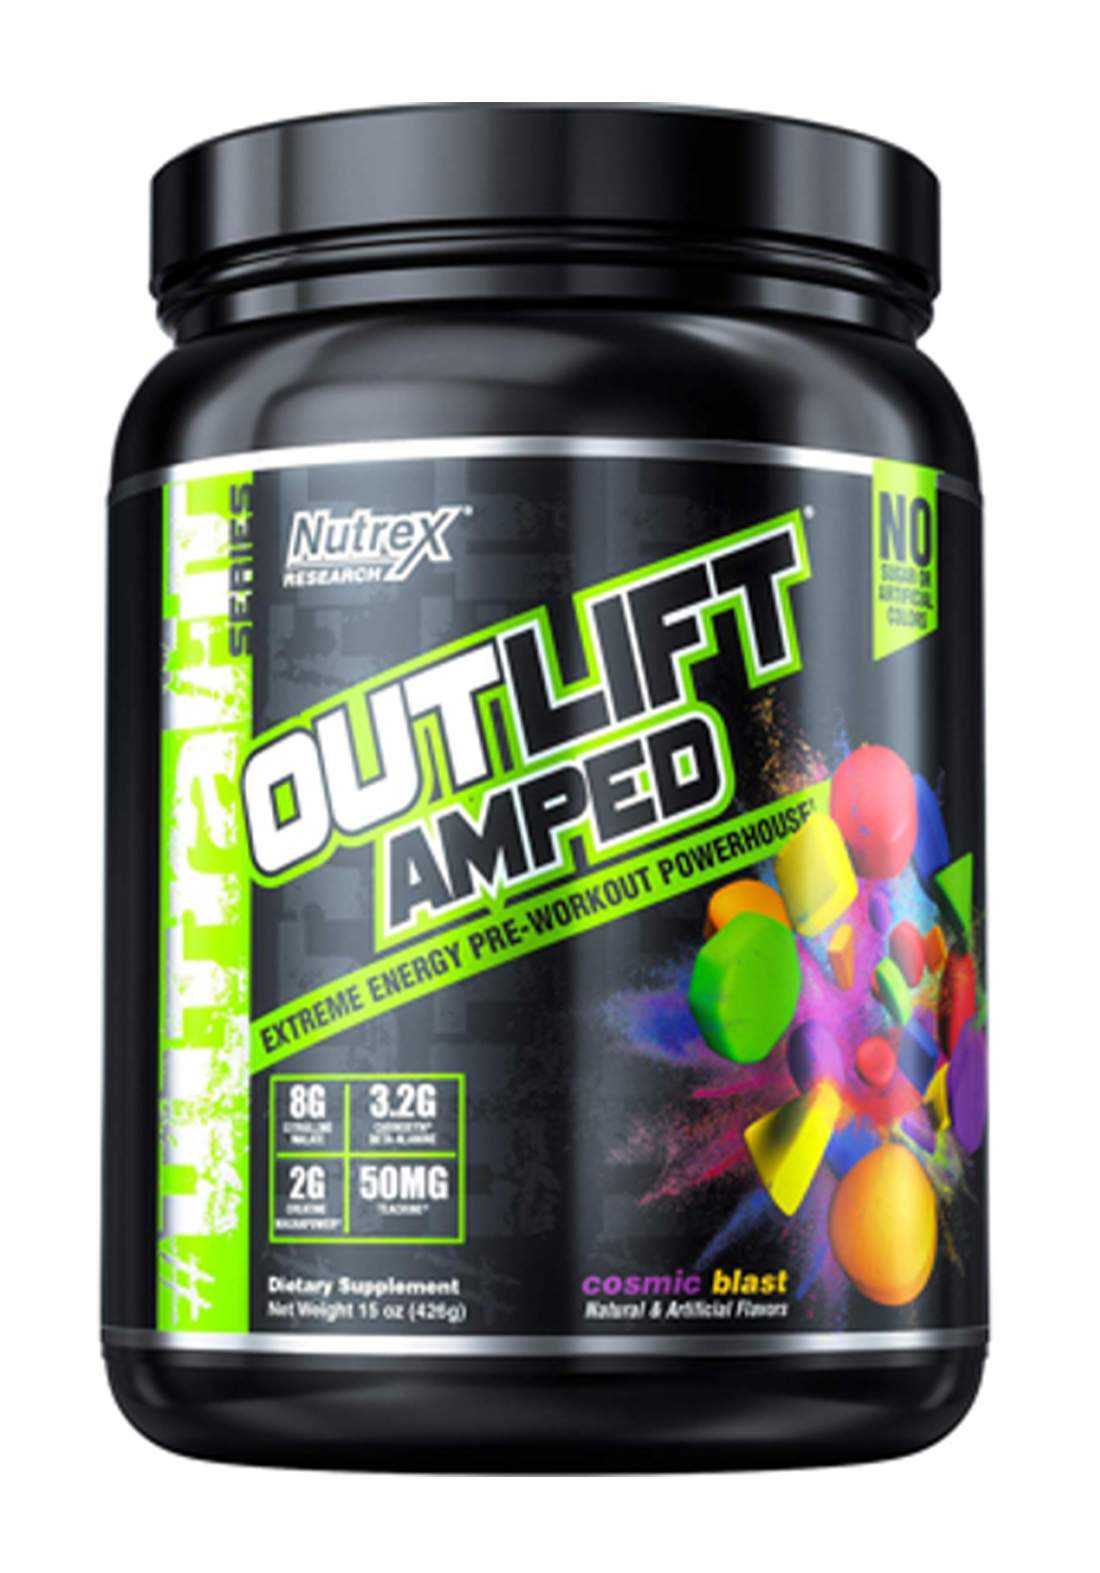 Nutrex Outlift Amped Extreme Energy Pre-WorkoutCosmic Blast 20 Servings   مكمل غذائي